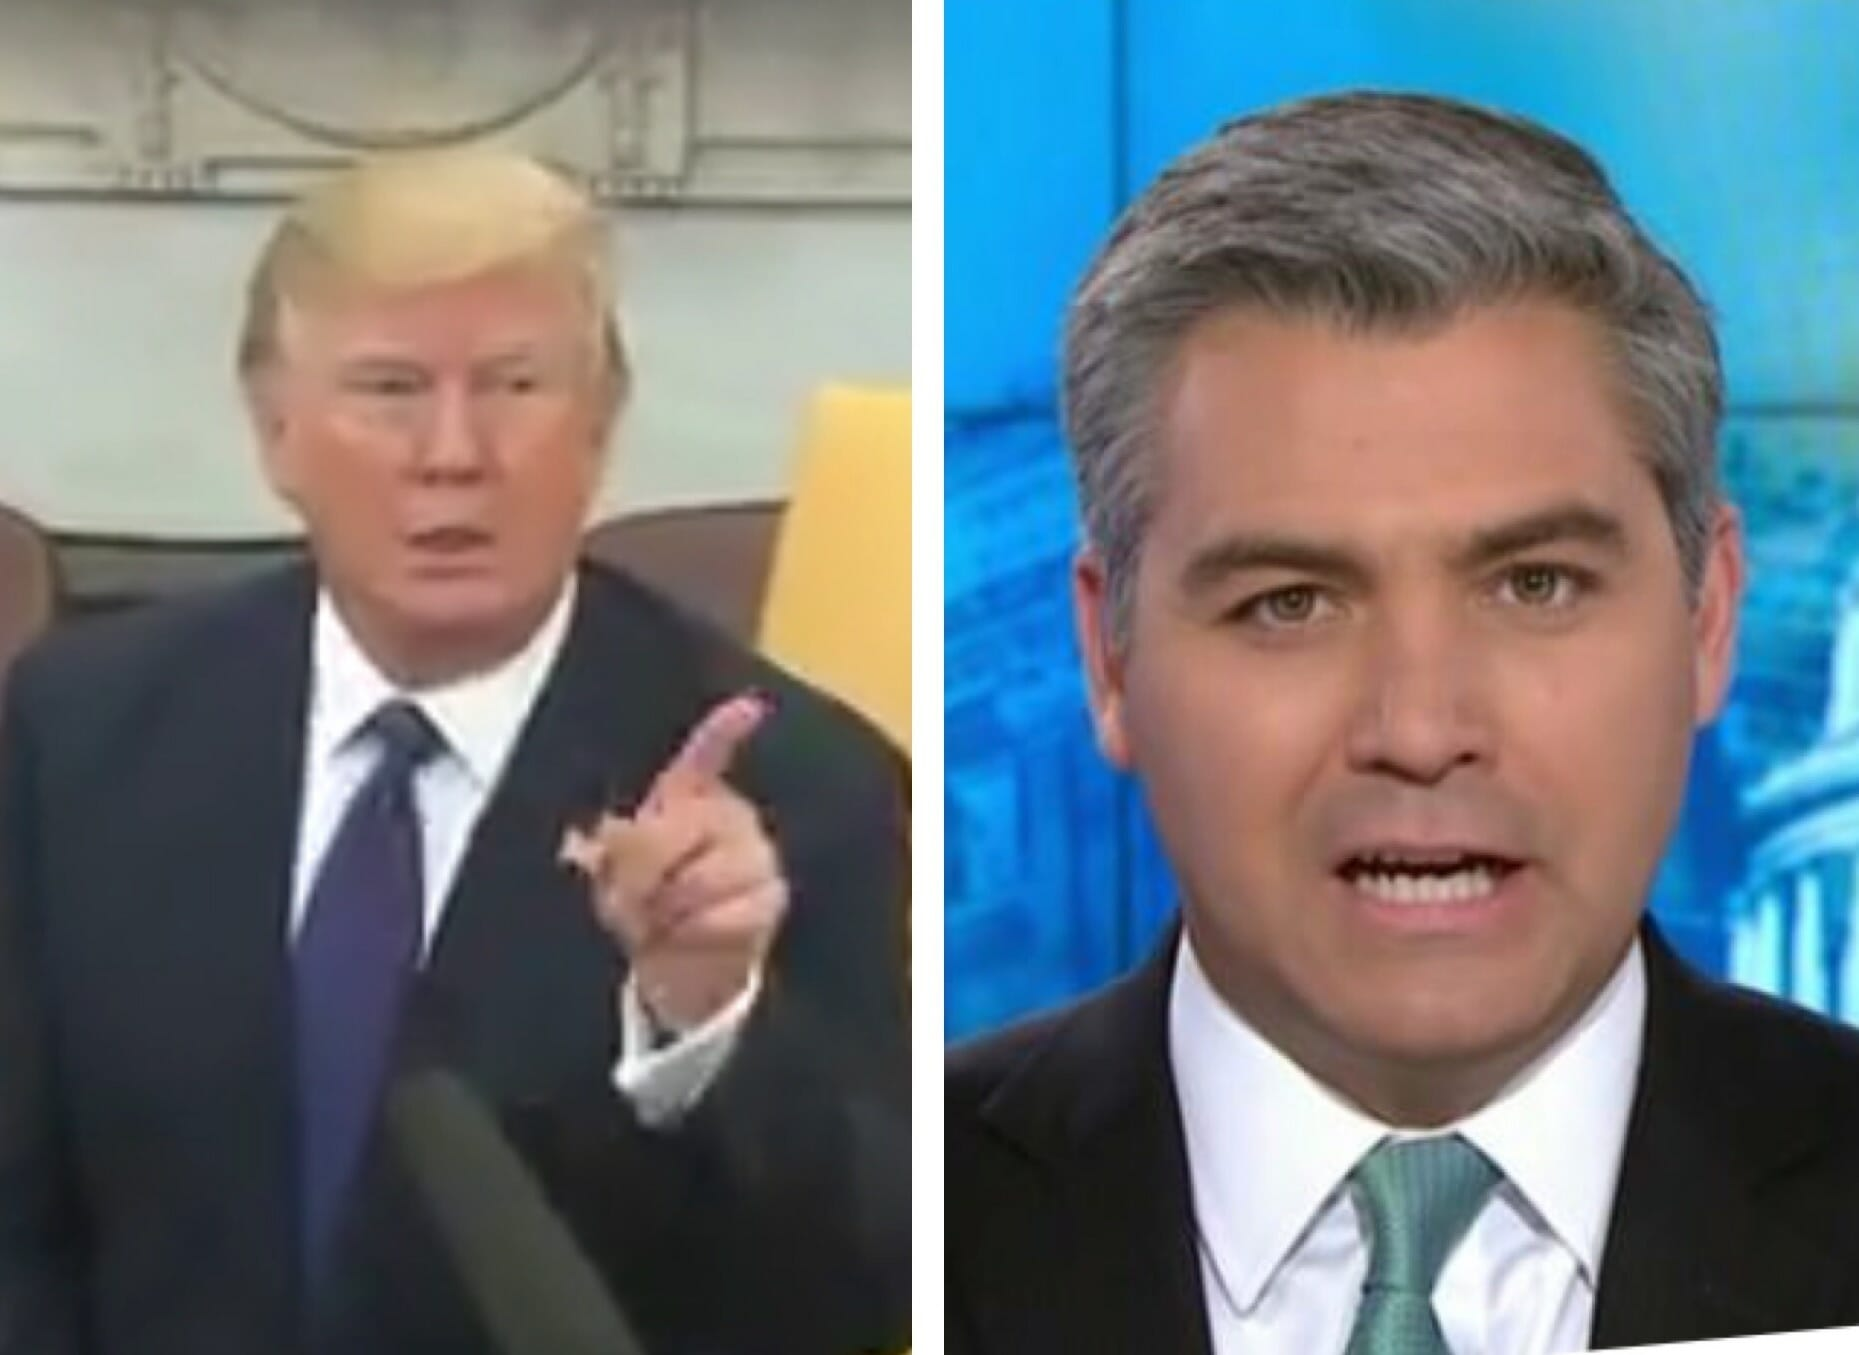 """POTUS Trump Tells CNN's Jim Acosta to get """"Out"""" of the Oval Office After His Latest Outburst (VIDEO)"""